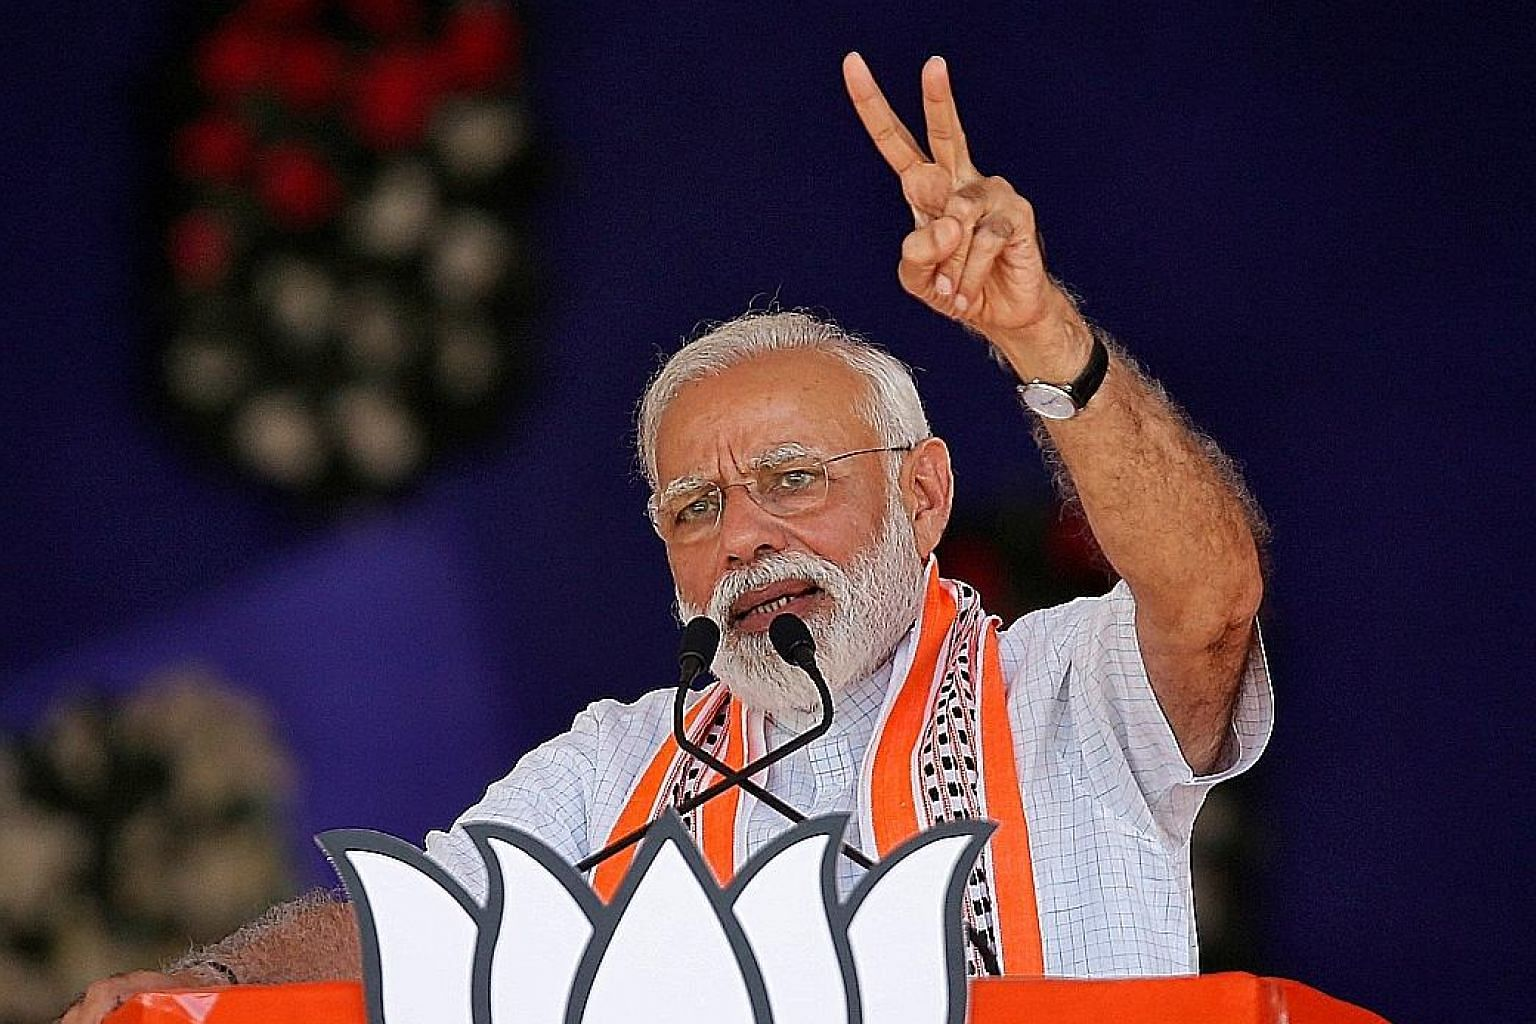 Prime Minister Narendra Modi at an election campaign rally in Gujarat on Wednesday. The writer says that unless India changes a great deal about itself - and fast - it is in danger of never performing to its potential.